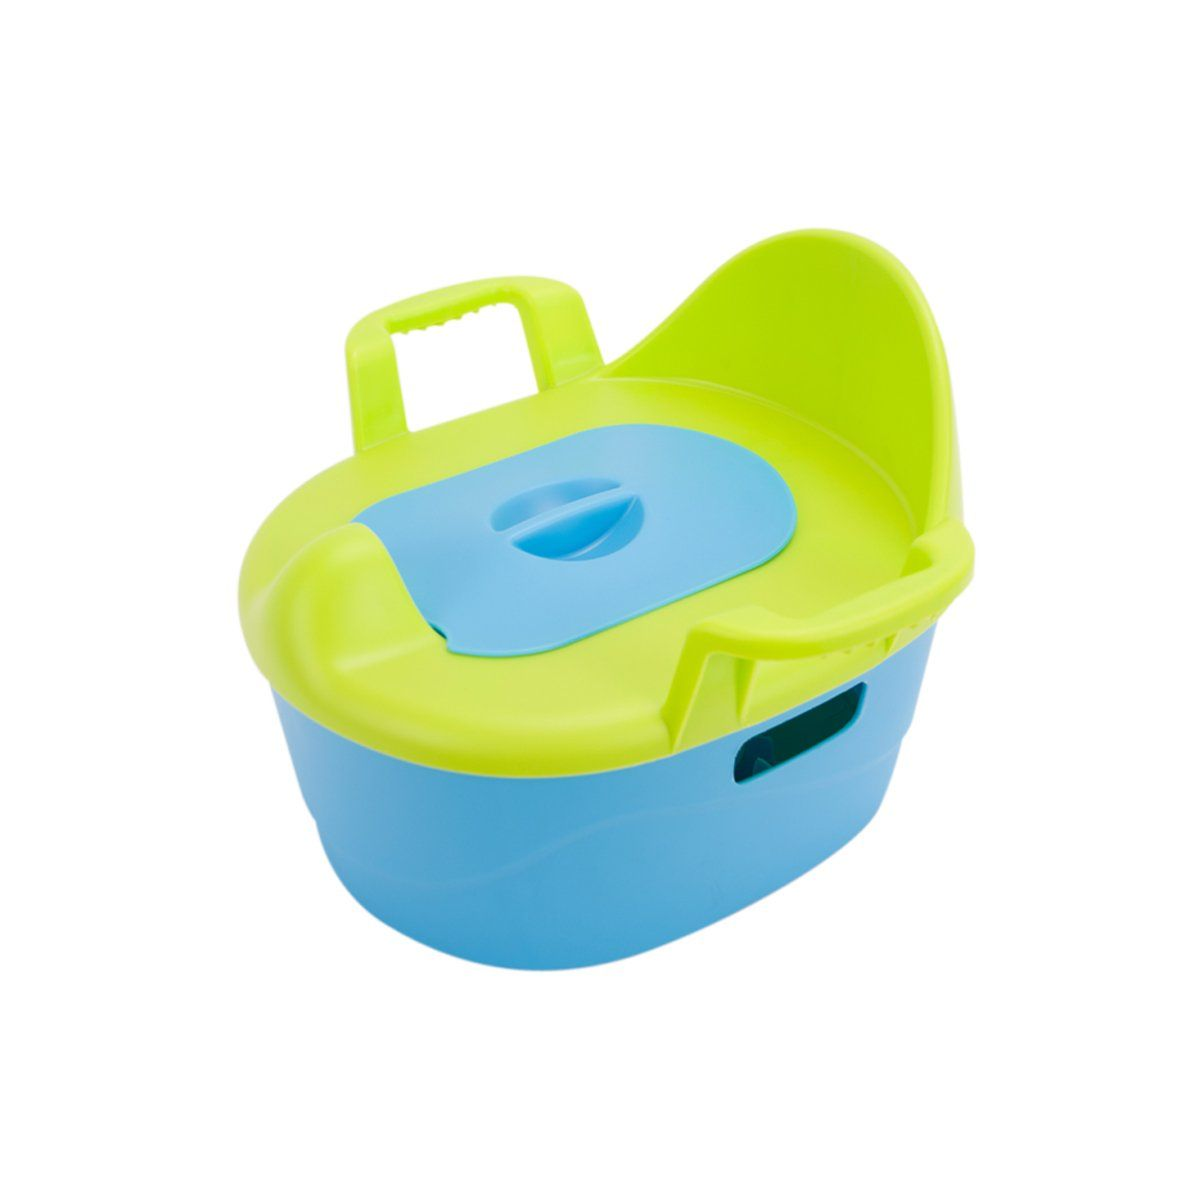 3 In 1 Travel Potty Chair Baby Potty Toilet Trainer Step Stool All In One Stable And Comfortable Ba Travel Potty Chair Potty Training Fun Infant Potty Training